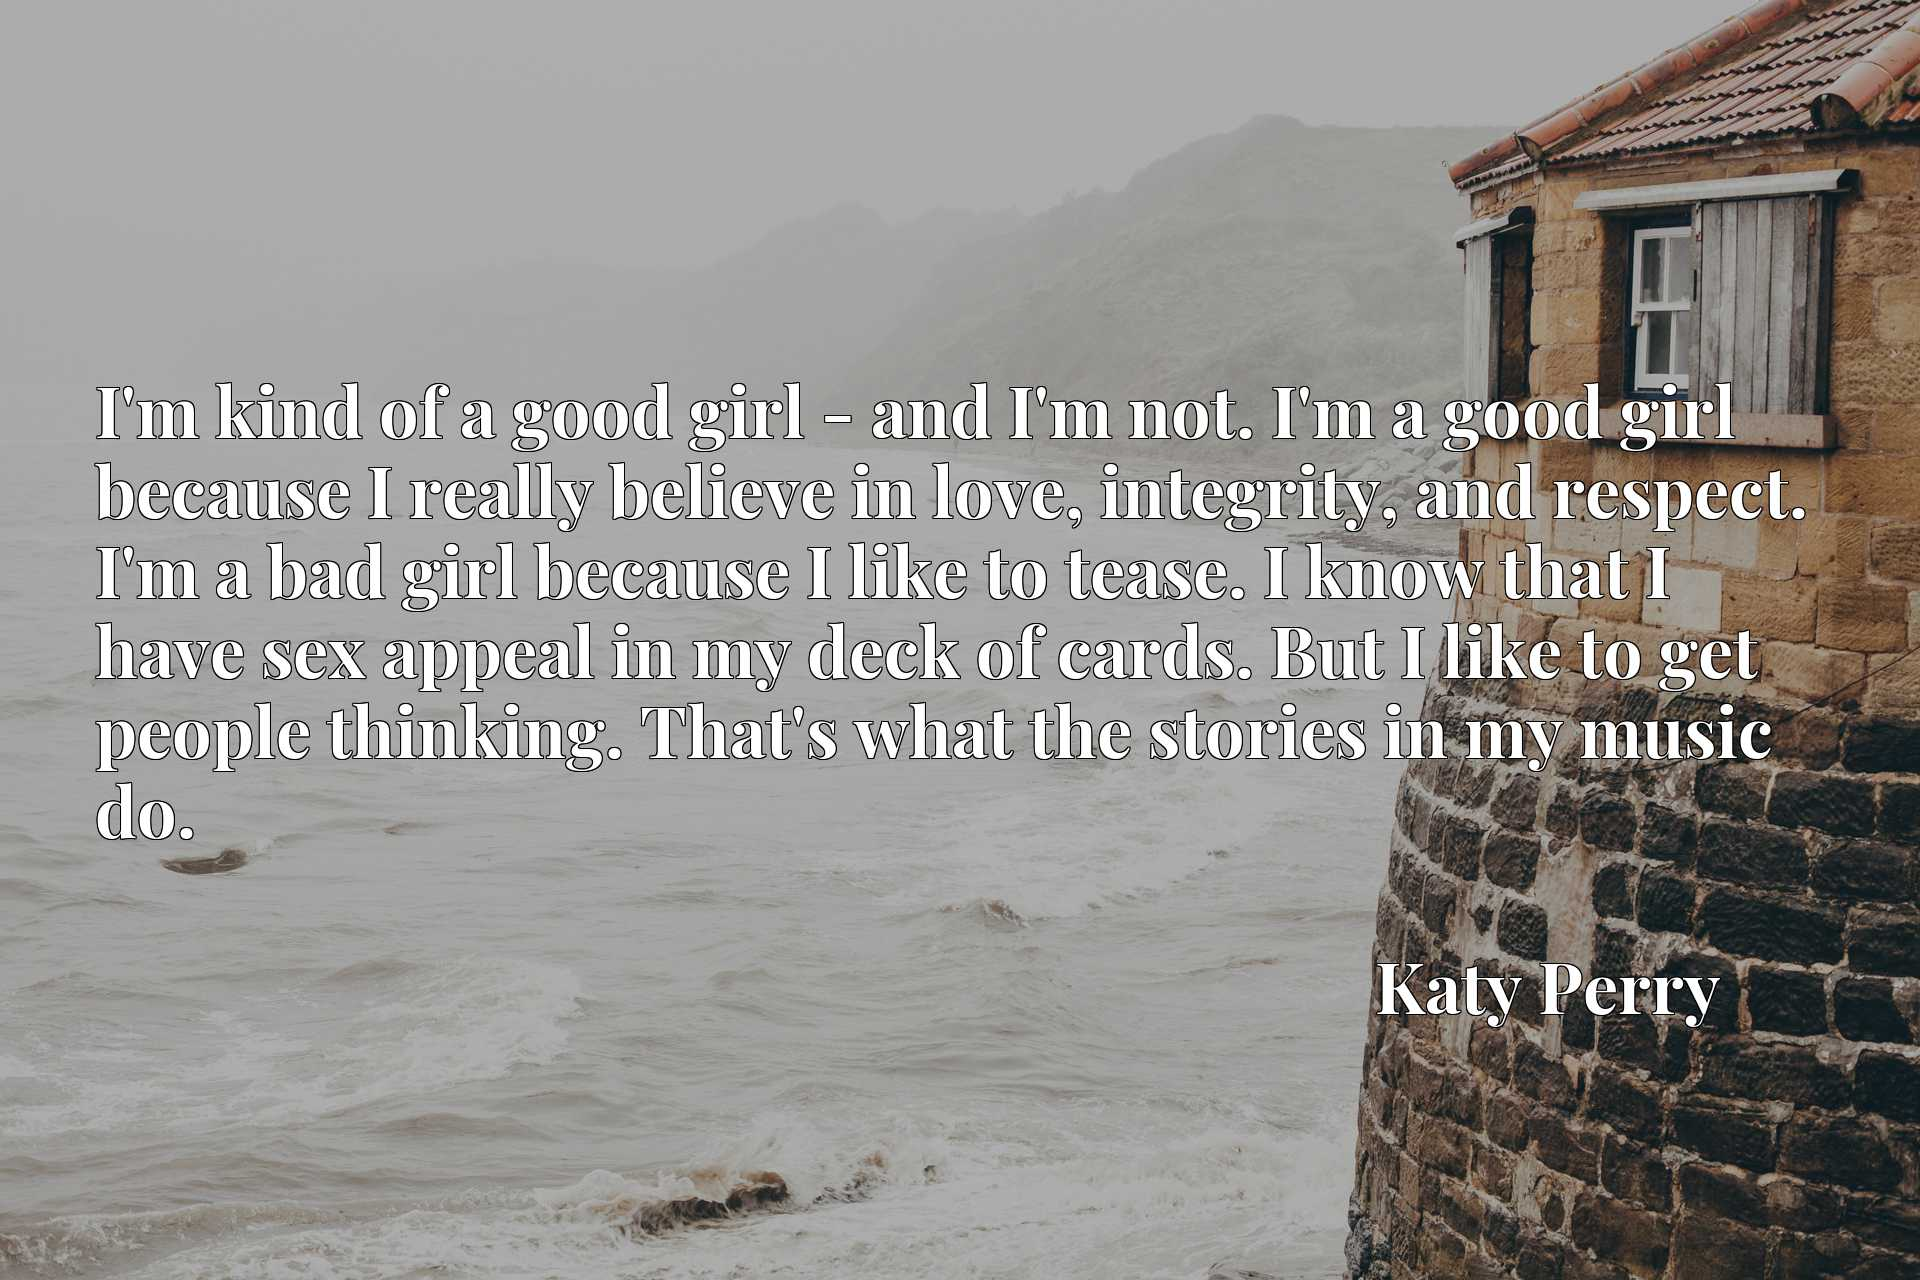 I'm kind of a good girl - and I'm not. I'm a good girl because I really believe in love, integrity, and respect. I'm a bad girl because I like to tease. I know that I have sex appeal in my deck of cards. But I like to get people thinking. That's what the stories in my music do.